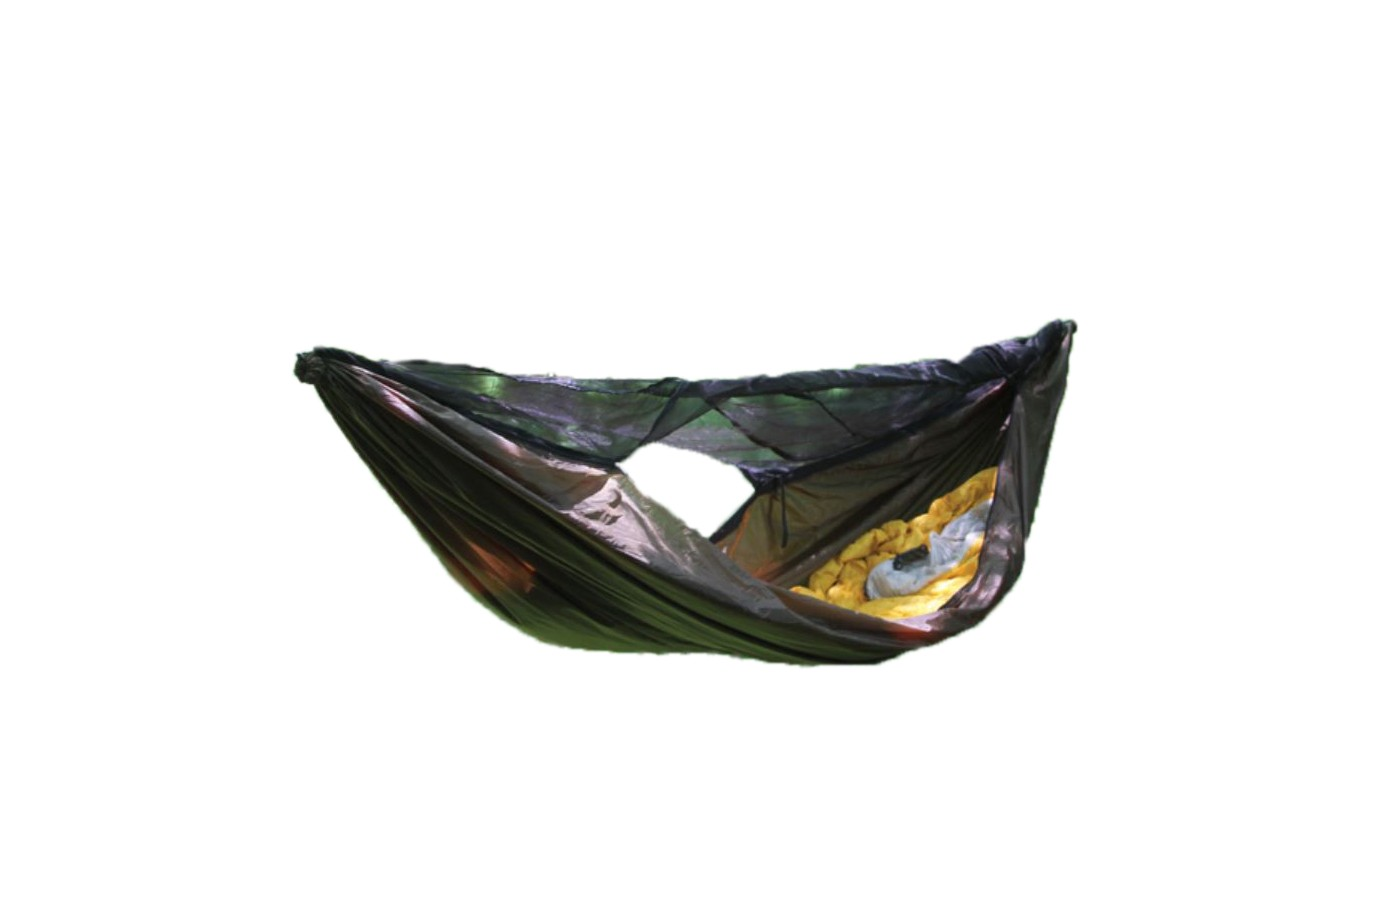 The built in netting can be fully unzipped on one side.